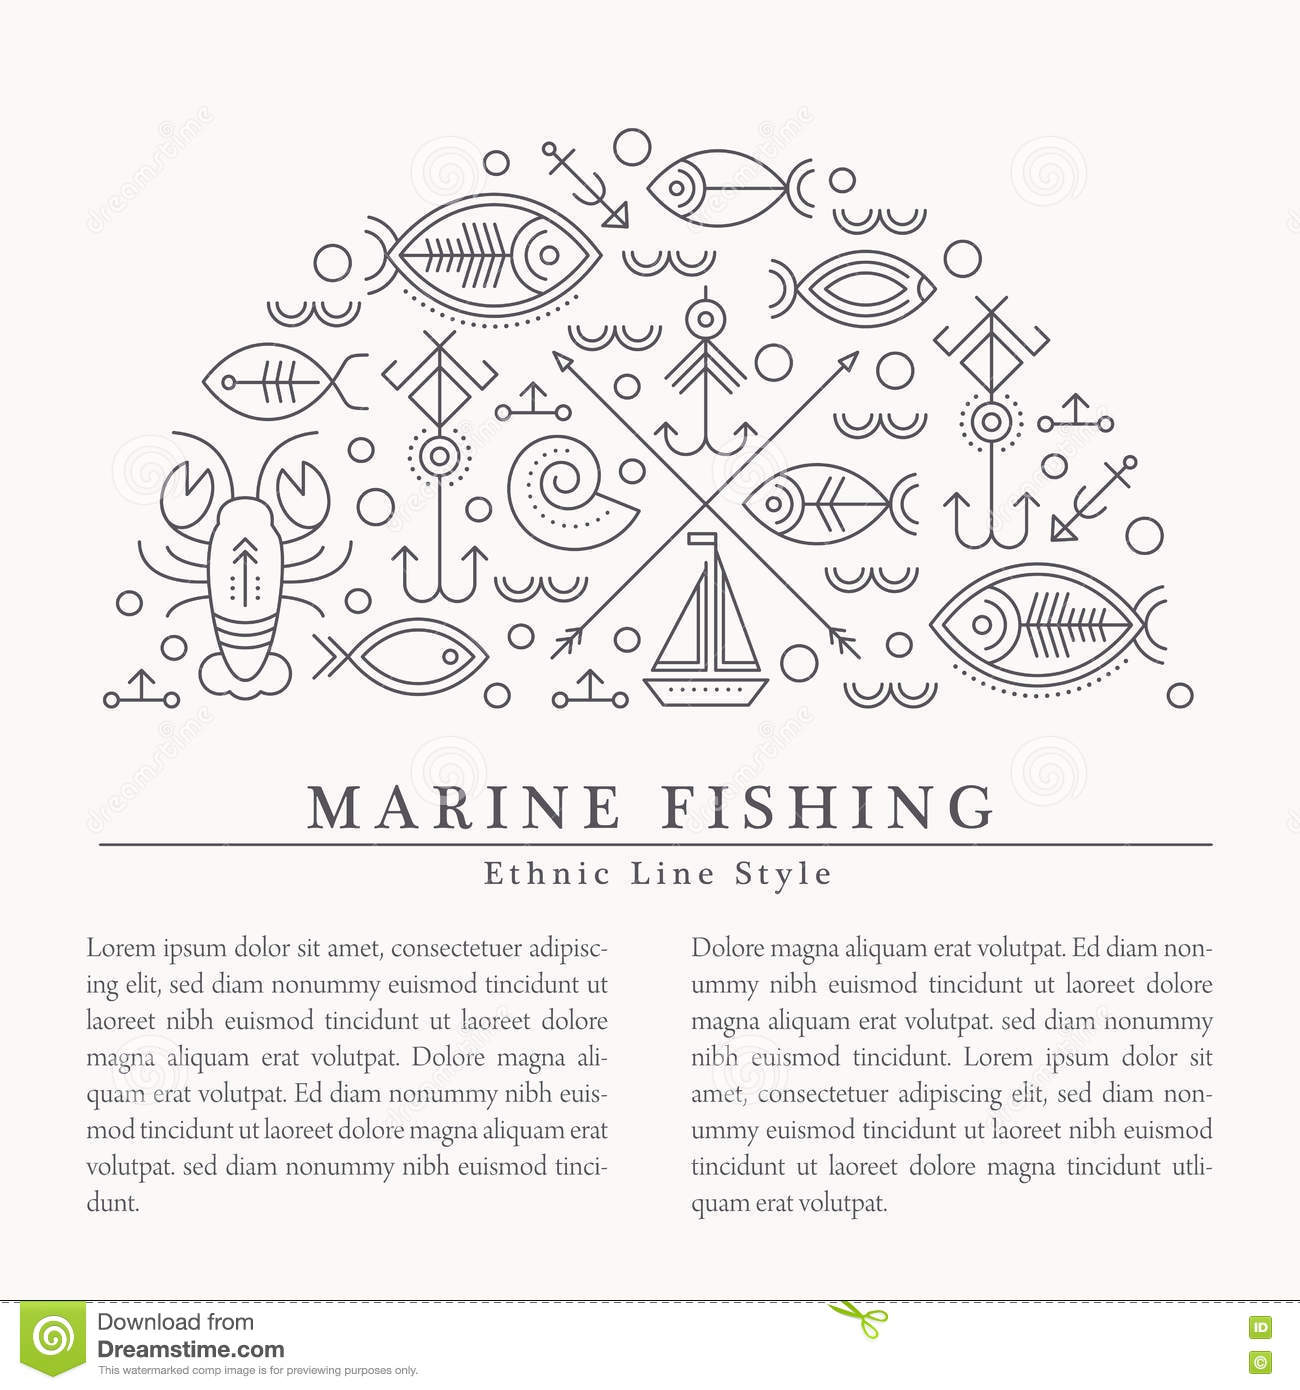 Vector illustration with outlined nautical and fishing signs forming a half-circle